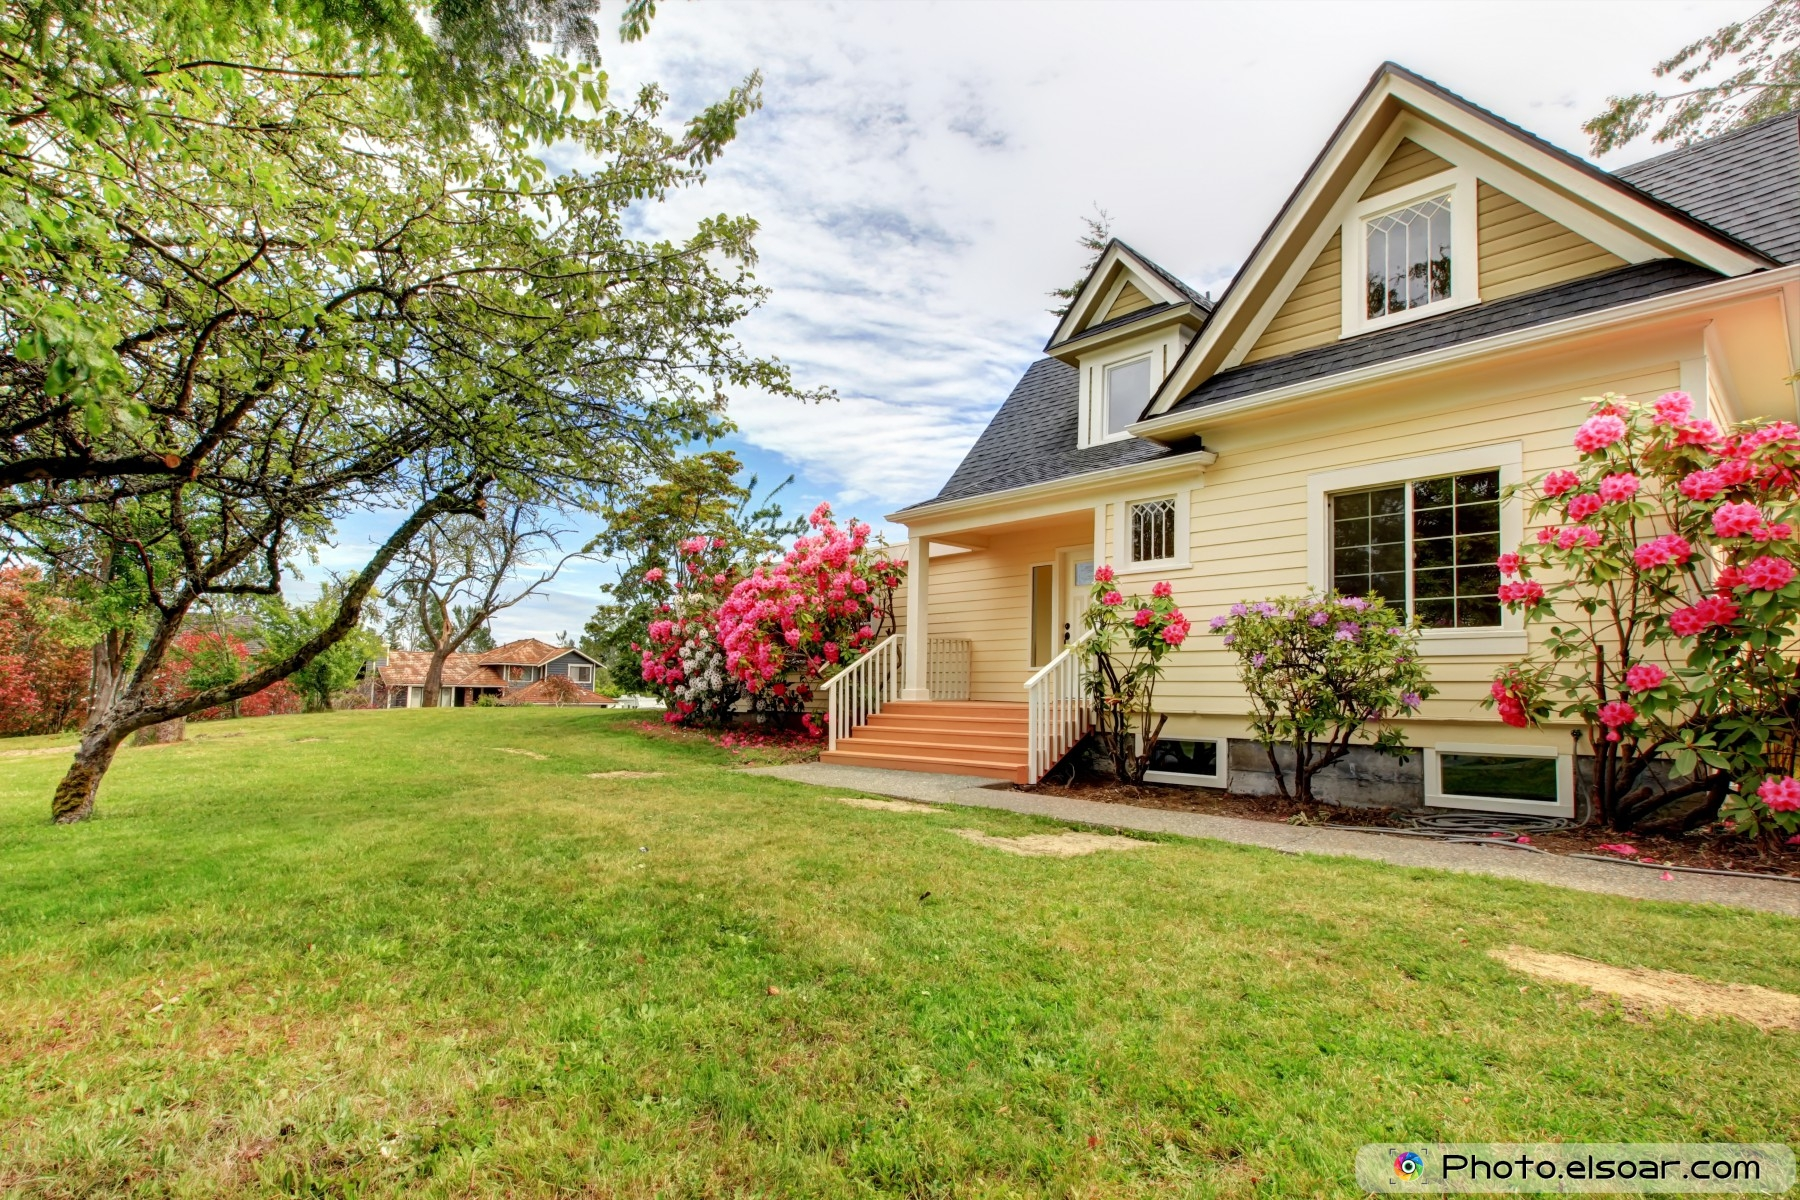 awesome 10 house exterior with spring blooming rhododendron • elsoar